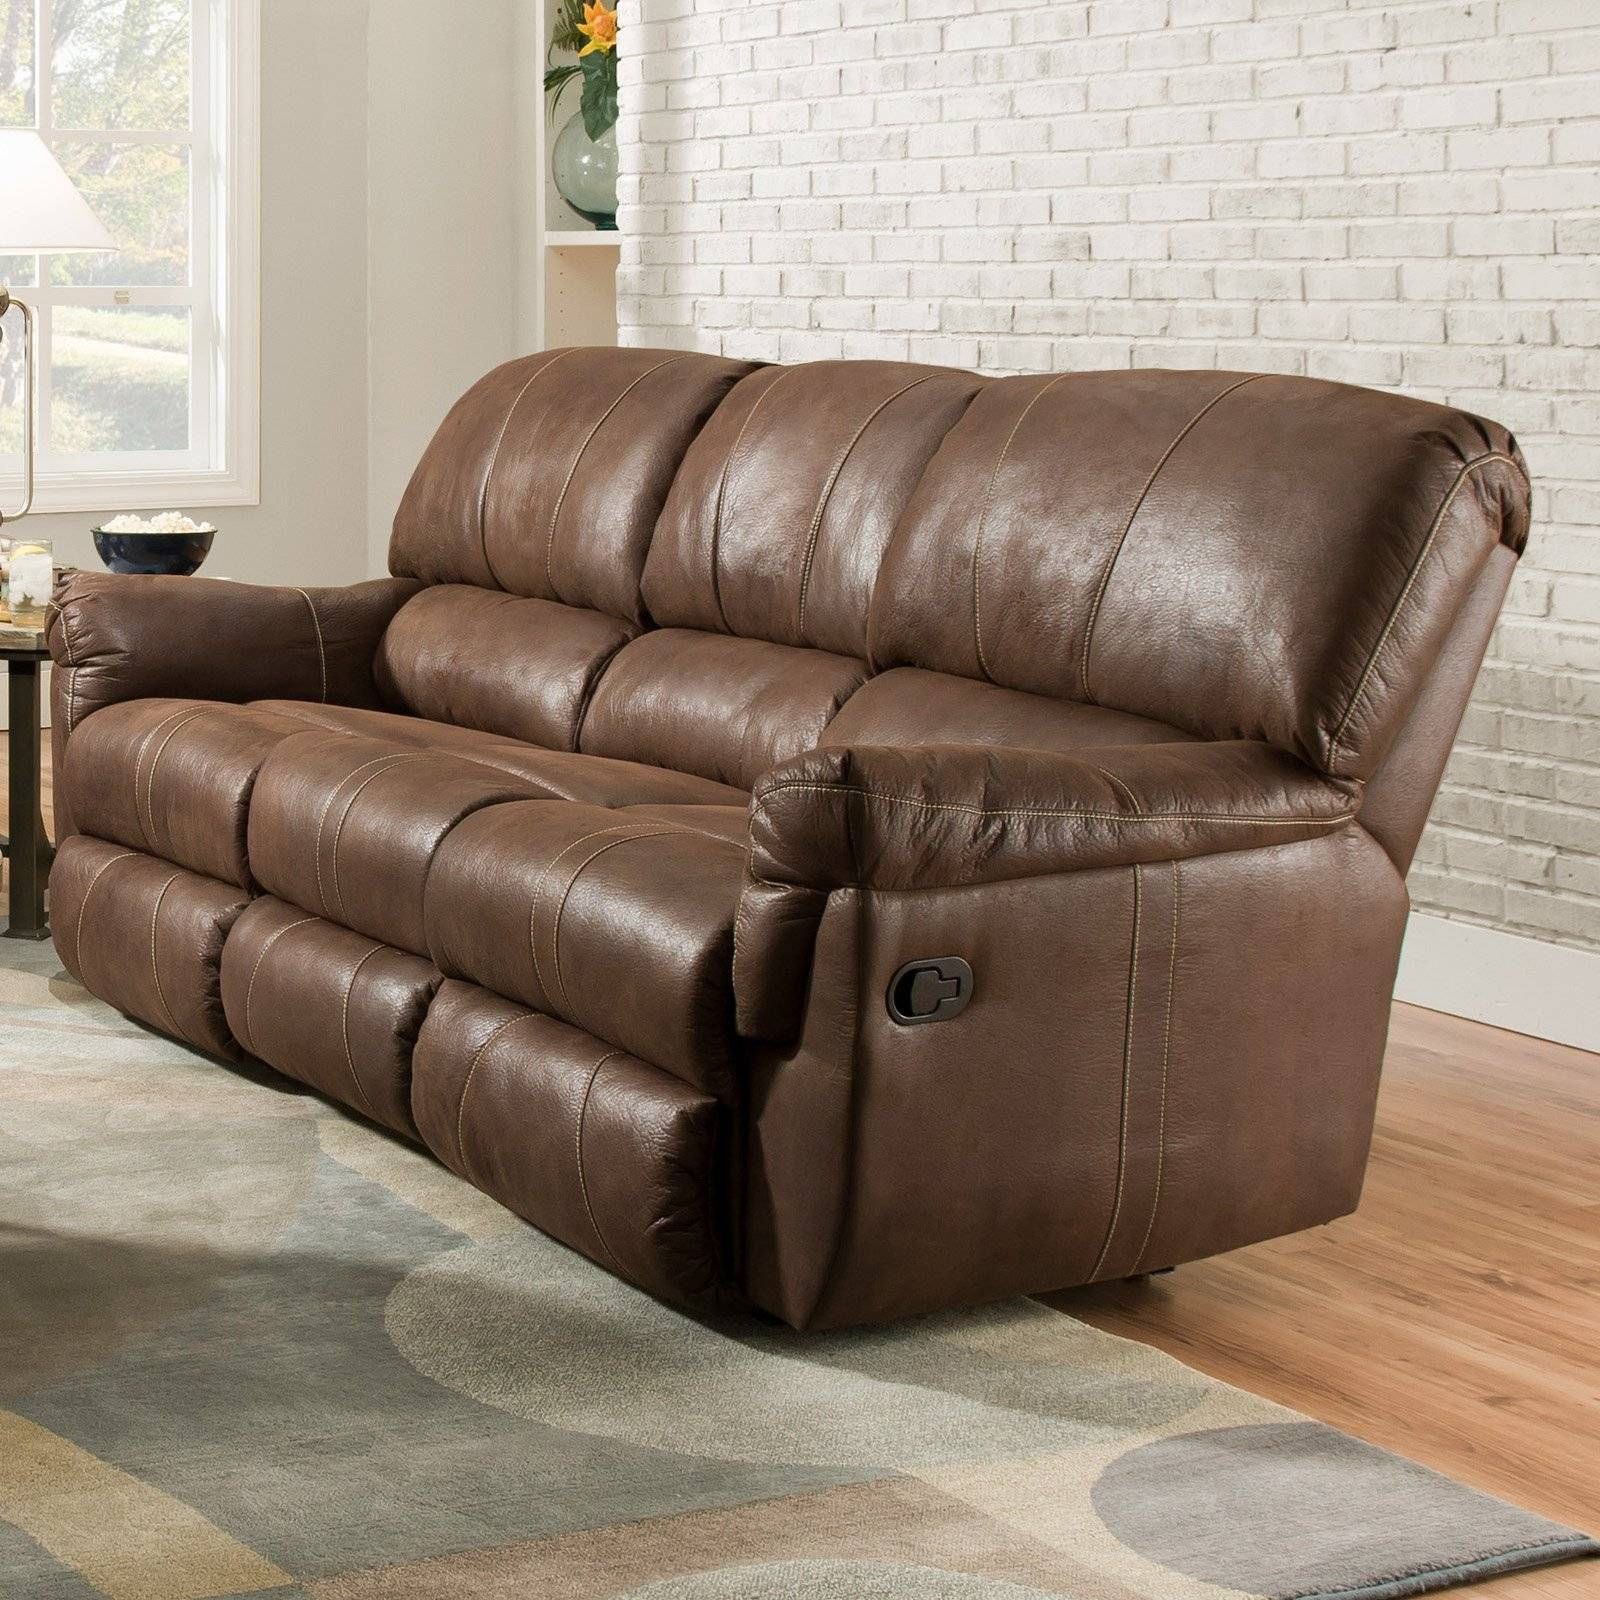 Furniture: Brings Big Comfort To Your Home With Simmons Couch Pertaining To Simmons Leather Sofas And Loveseats (View 5 of 15)